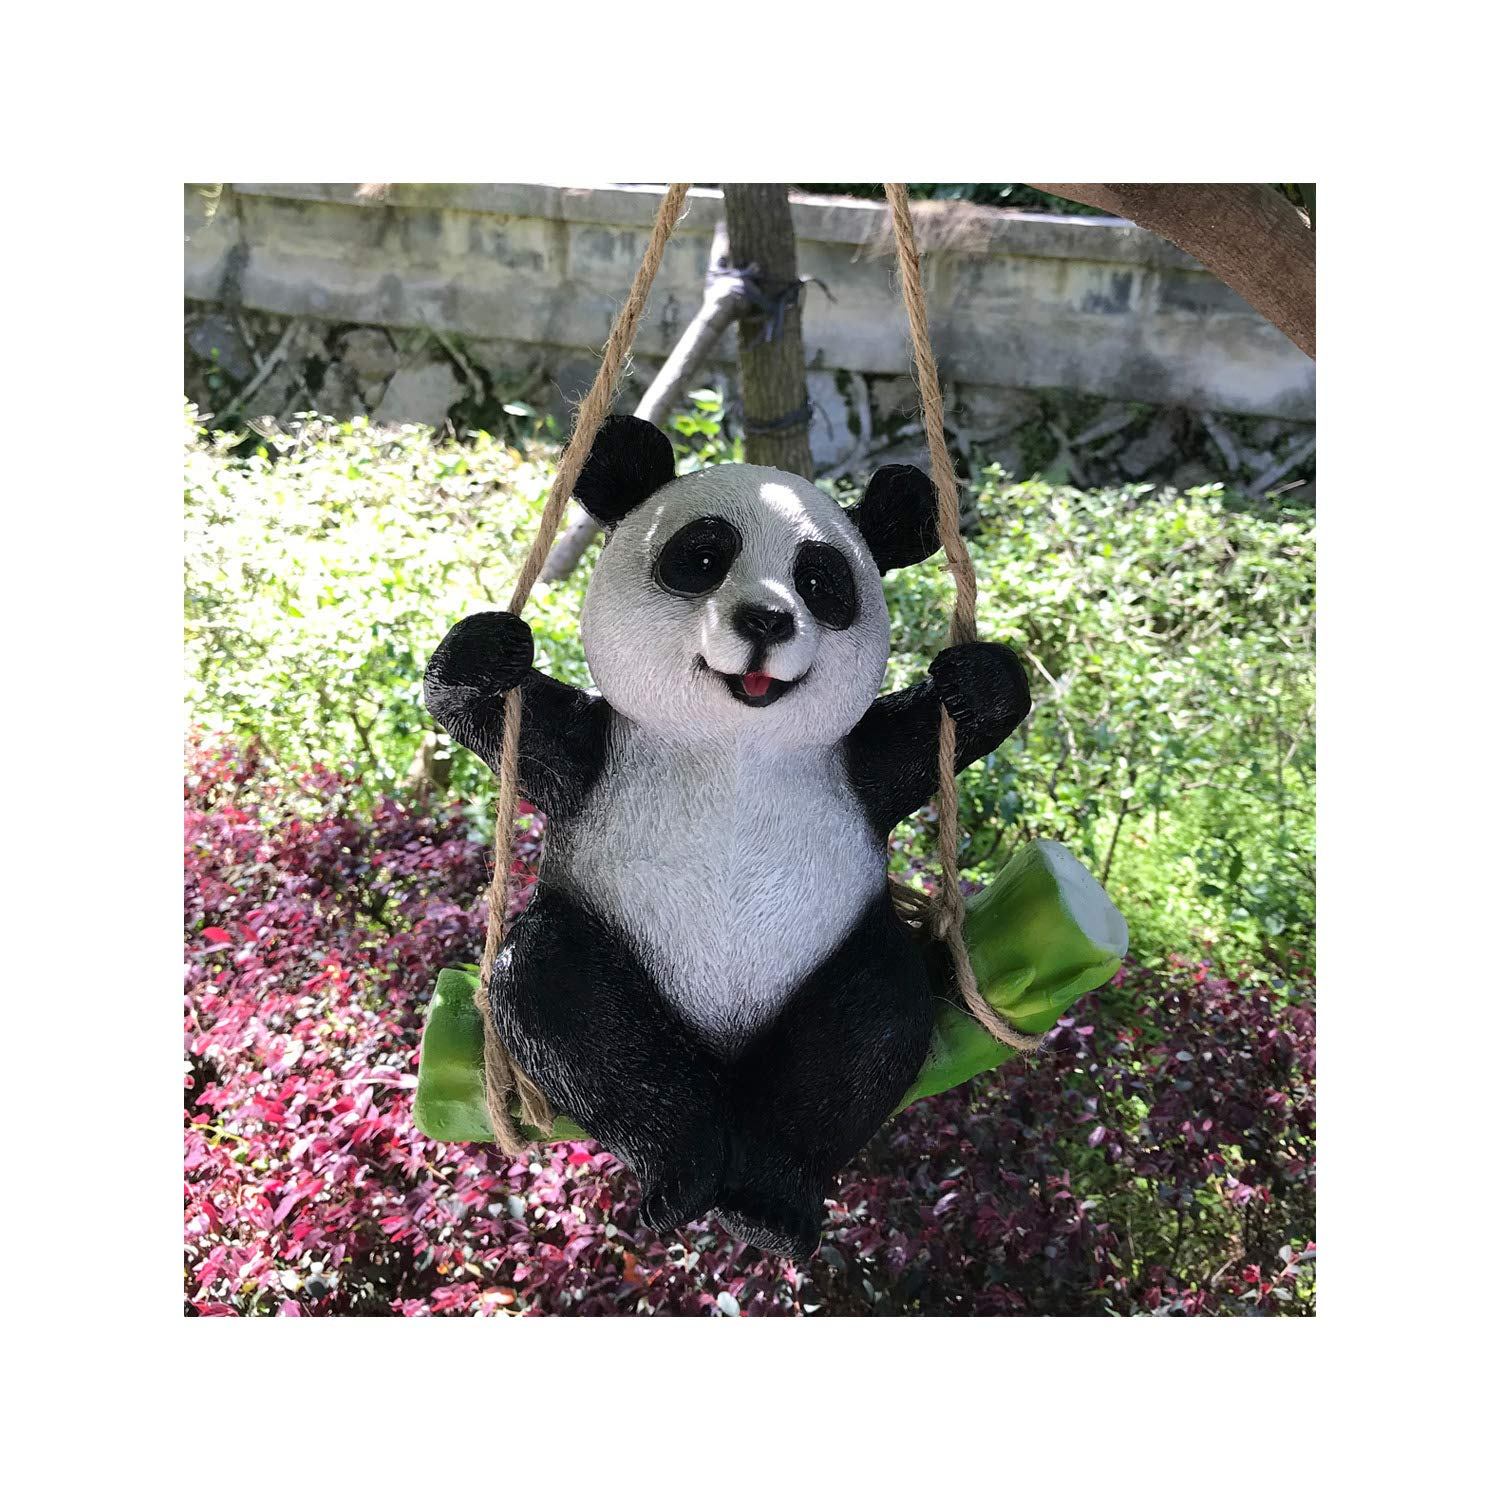 Goods247 Cute Black and White Panda Swing on Bamboo Creative Statue as Garden Decoration